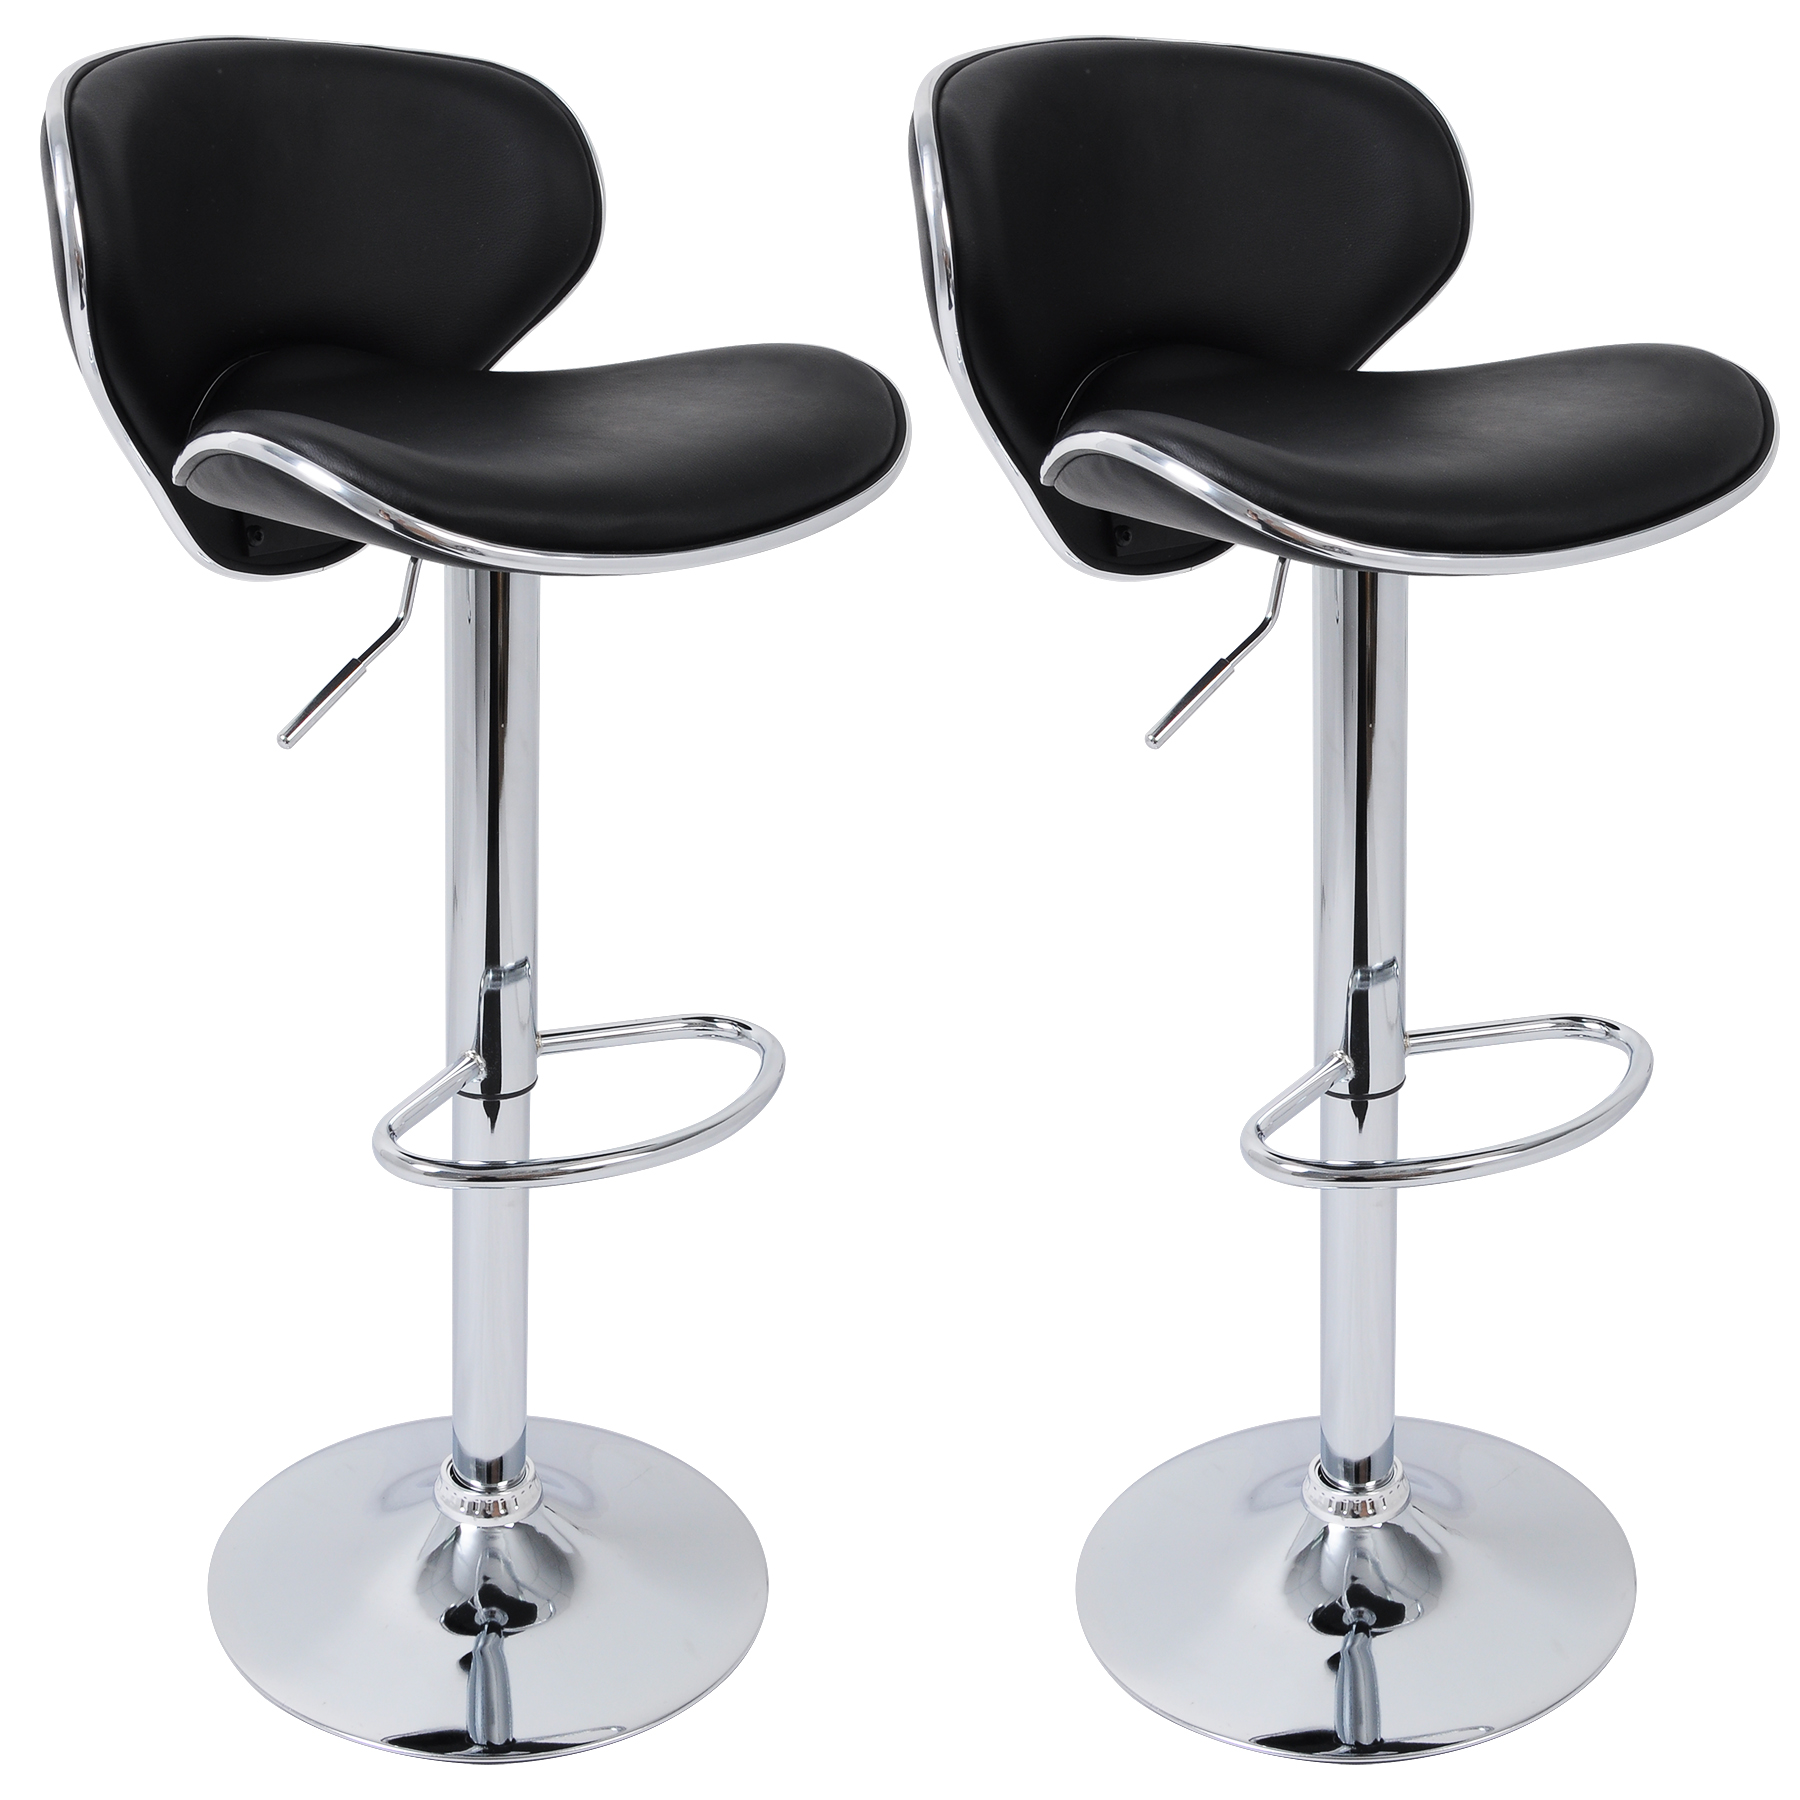 2 x tabourets de bar en cuir synth tique cuisine chaise de - Chaise bar reglable ...